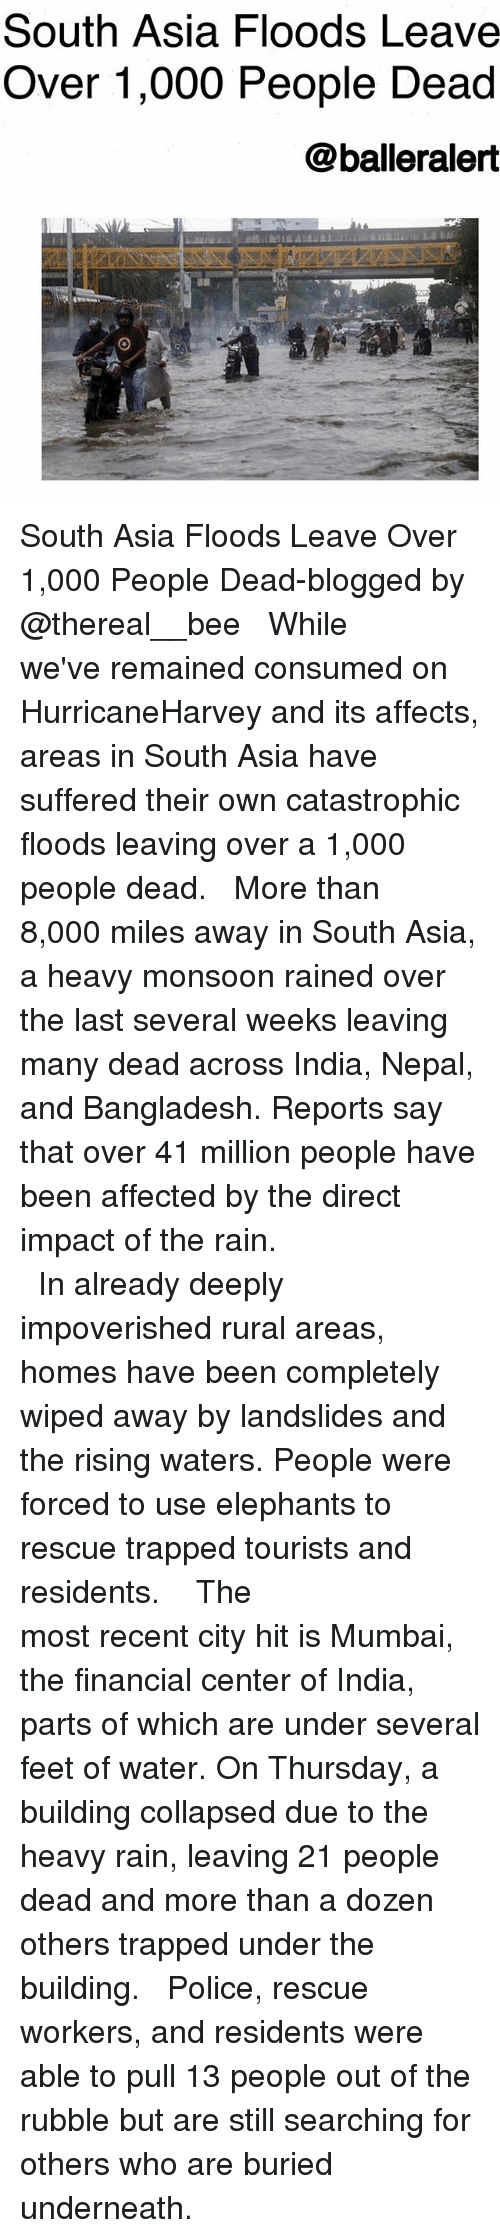 Underneathe: South Asia Floods Leave  Over 1,000 People Dead  @balleralert South Asia Floods Leave Over 1,000 People Dead-blogged by @thereal__bee ⠀⠀⠀⠀⠀⠀⠀⠀⠀ ⠀⠀ While we've remained consumed on HurricaneHarvey and its affects, areas in South Asia have suffered their own catastrophic floods leaving over a 1,000 people dead. ⠀⠀⠀⠀⠀⠀⠀⠀⠀ ⠀⠀ More than 8,000 miles away in South Asia, a heavy monsoon rained over the last several weeks leaving many dead across India, Nepal, and Bangladesh. Reports say that over 41 million people have been affected by the direct impact of the rain. ⠀⠀⠀⠀⠀⠀⠀⠀⠀ ⠀⠀⠀⠀⠀⠀⠀ ⠀⠀⠀⠀⠀⠀⠀ ⠀⠀⠀⠀⠀⠀⠀ In already deeply impoverished rural areas, homes have been completely wiped away by landslides and the rising waters. People were forced to use elephants to rescue trapped tourists and residents. ⠀⠀⠀⠀⠀⠀⠀⠀⠀ ⠀⠀⠀⠀⠀⠀⠀ ⠀⠀⠀⠀⠀⠀⠀ The most recent city hit is Mumbai, the financial center of India, parts of which are under several feet of water. On Thursday, a building collapsed due to the heavy rain, leaving 21 people dead and more than a dozen others trapped under the building. ⠀⠀⠀⠀⠀⠀⠀⠀⠀ ⠀⠀ Police, rescue workers, and residents were able to pull 13 people out of the rubble but are still searching for others who are buried underneath.